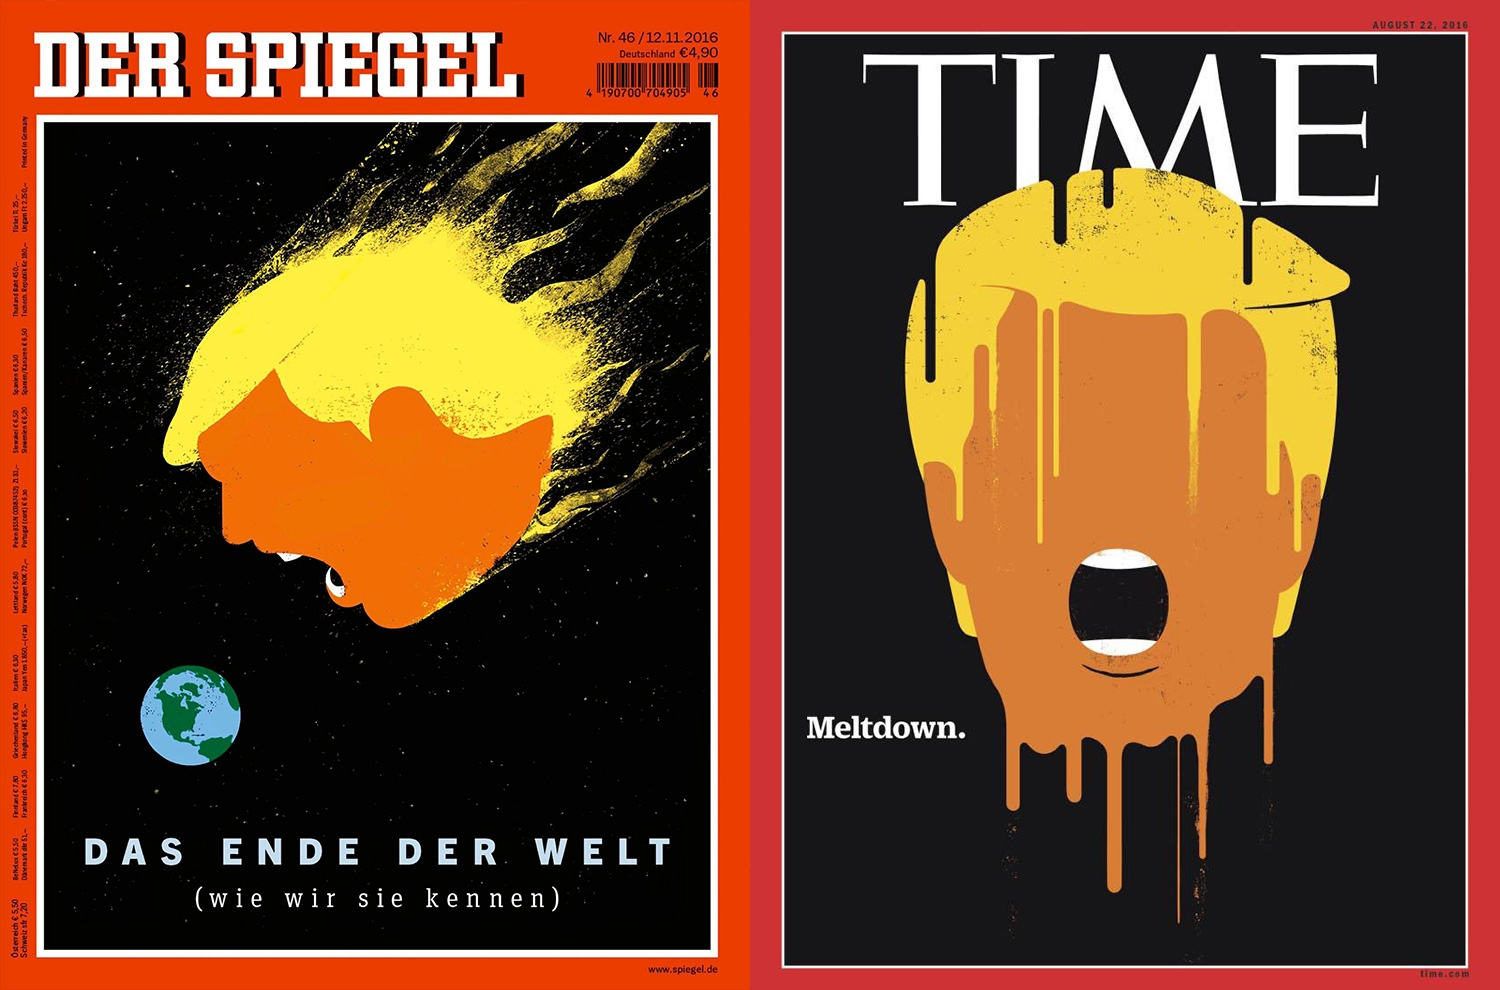 The magazine cover art of donald trump causing headlines for Spiegel magazi